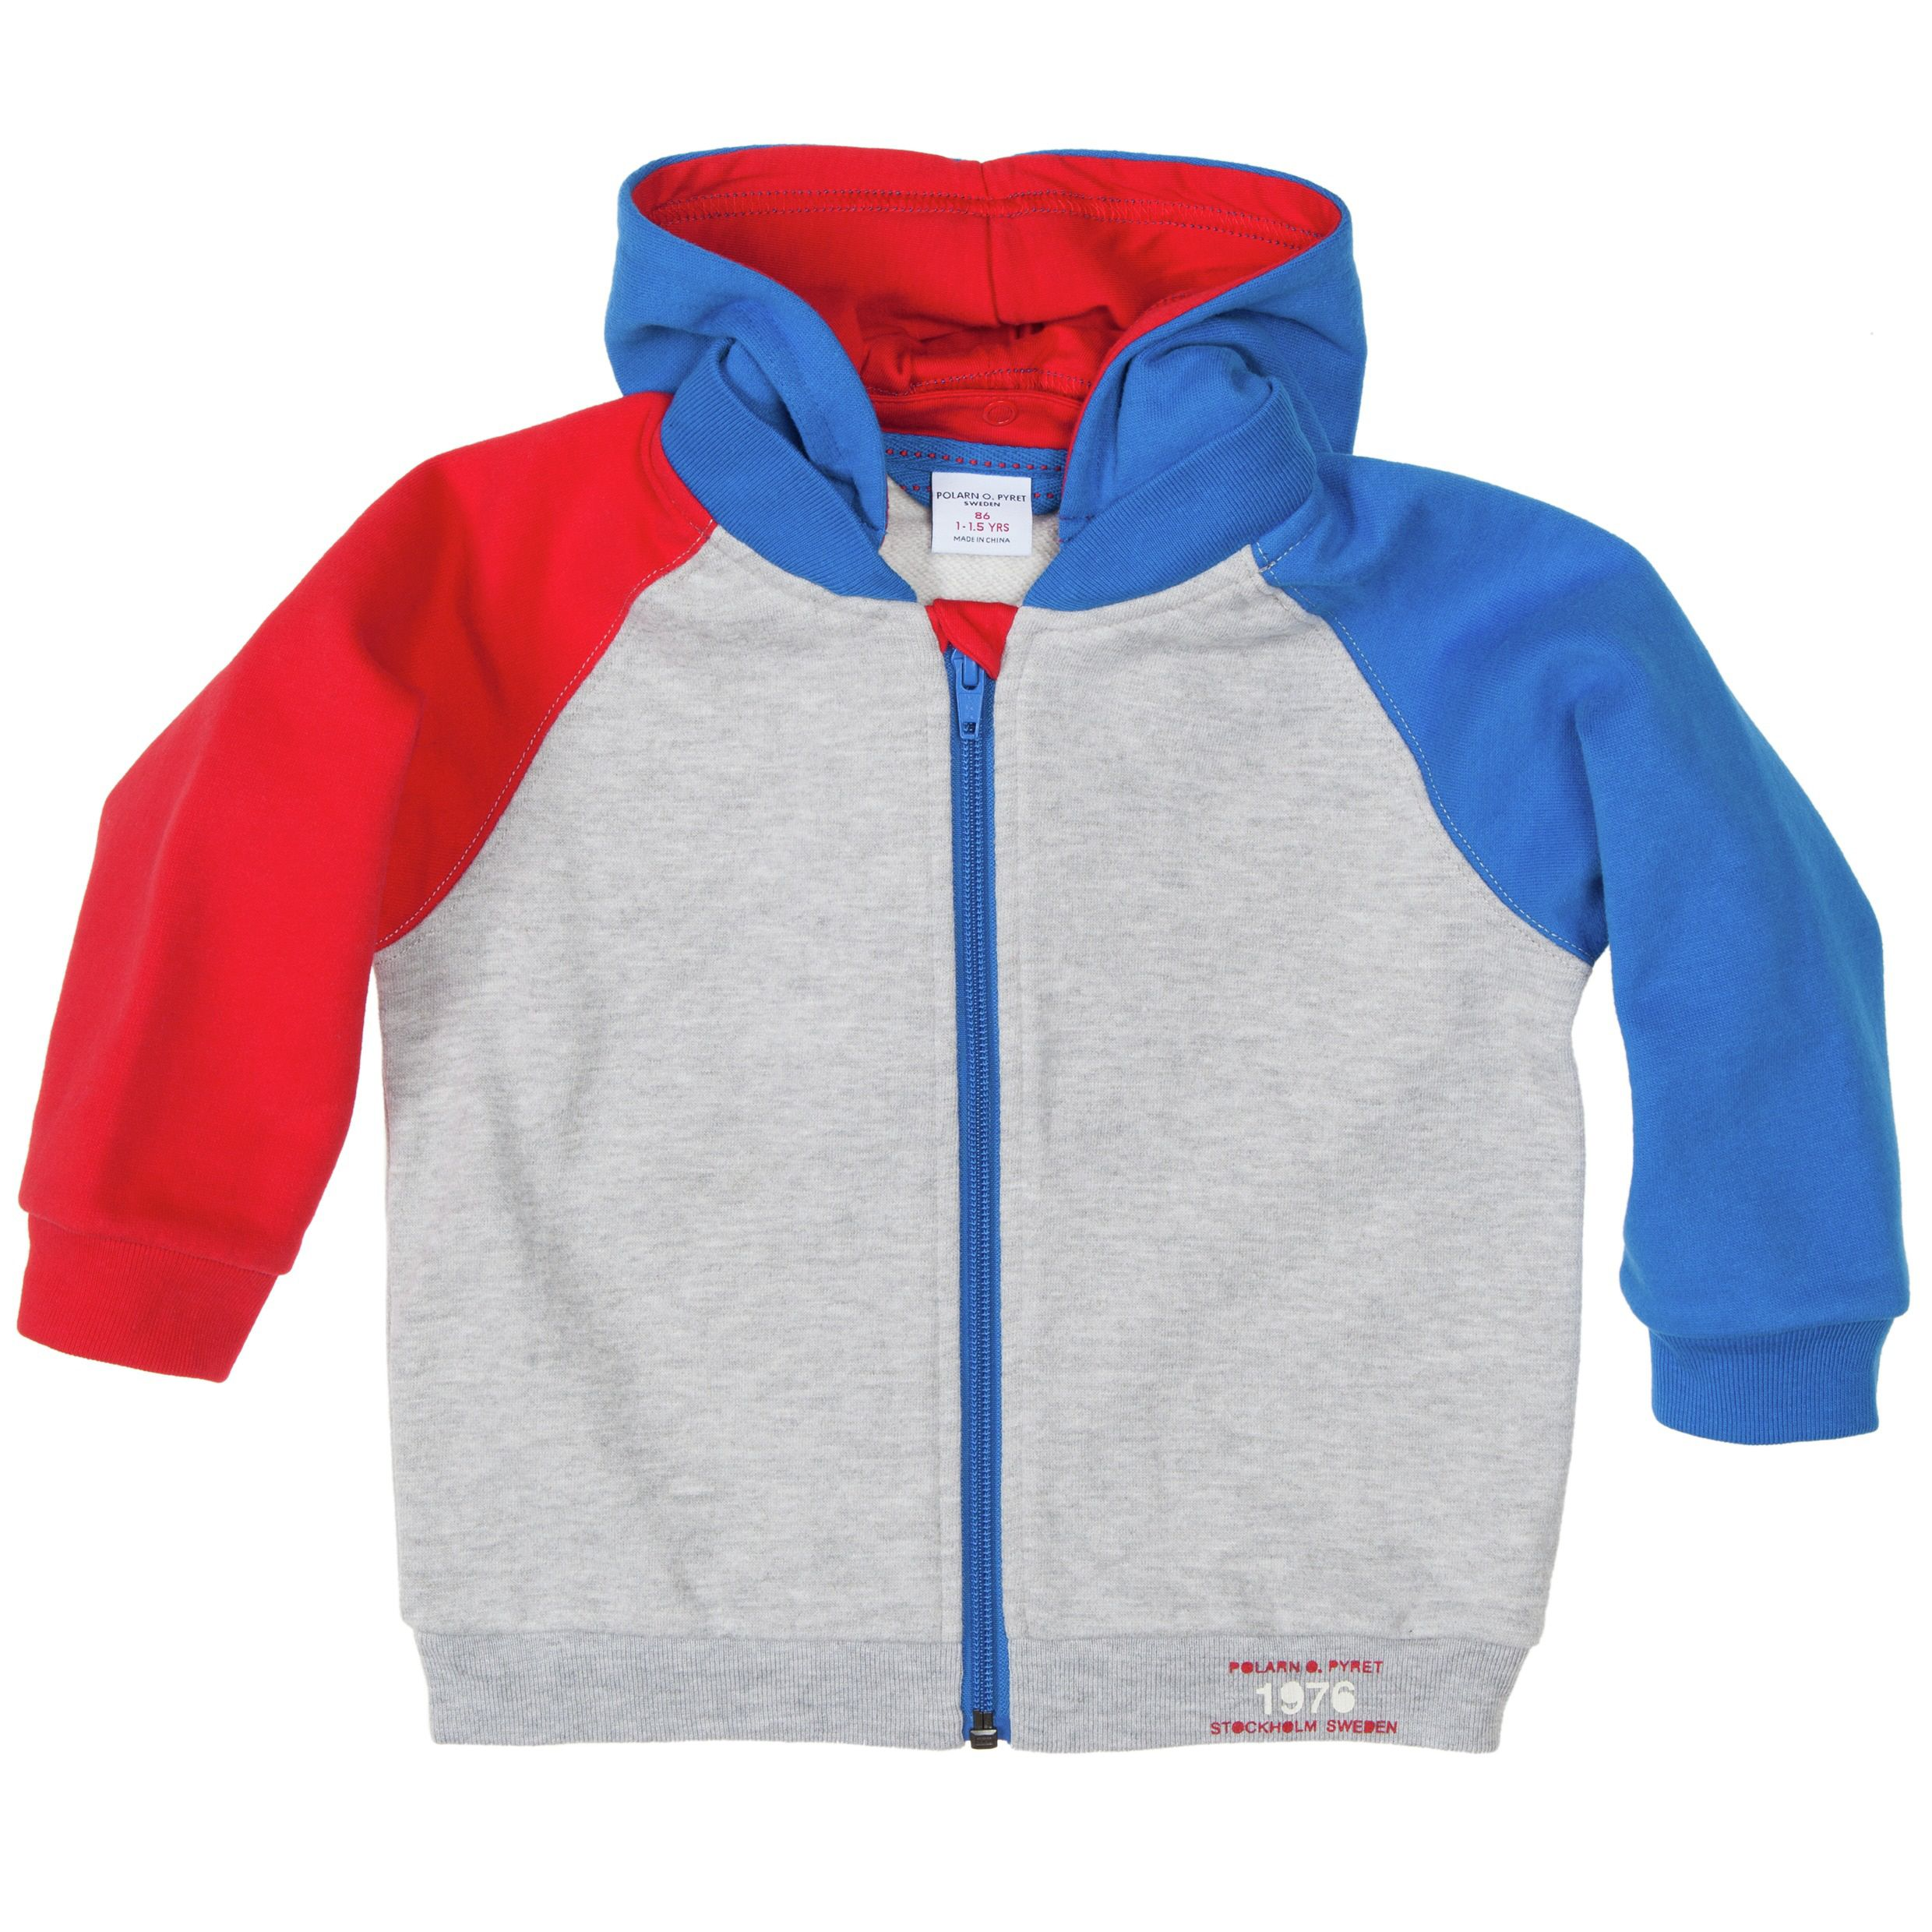 Baby multicolour hooded top